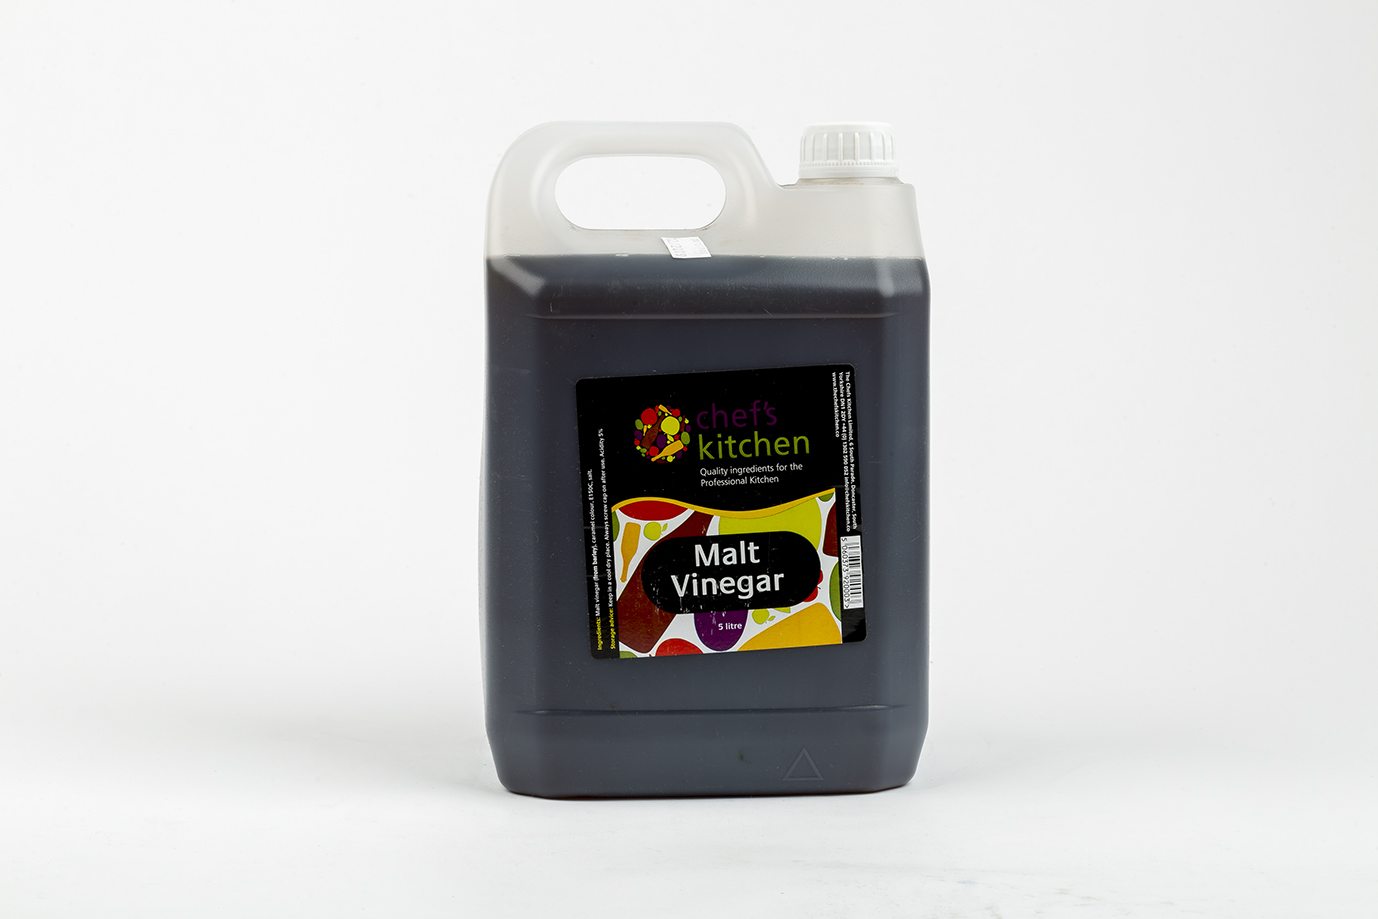 Image of Vinegar Malt 5 ltr